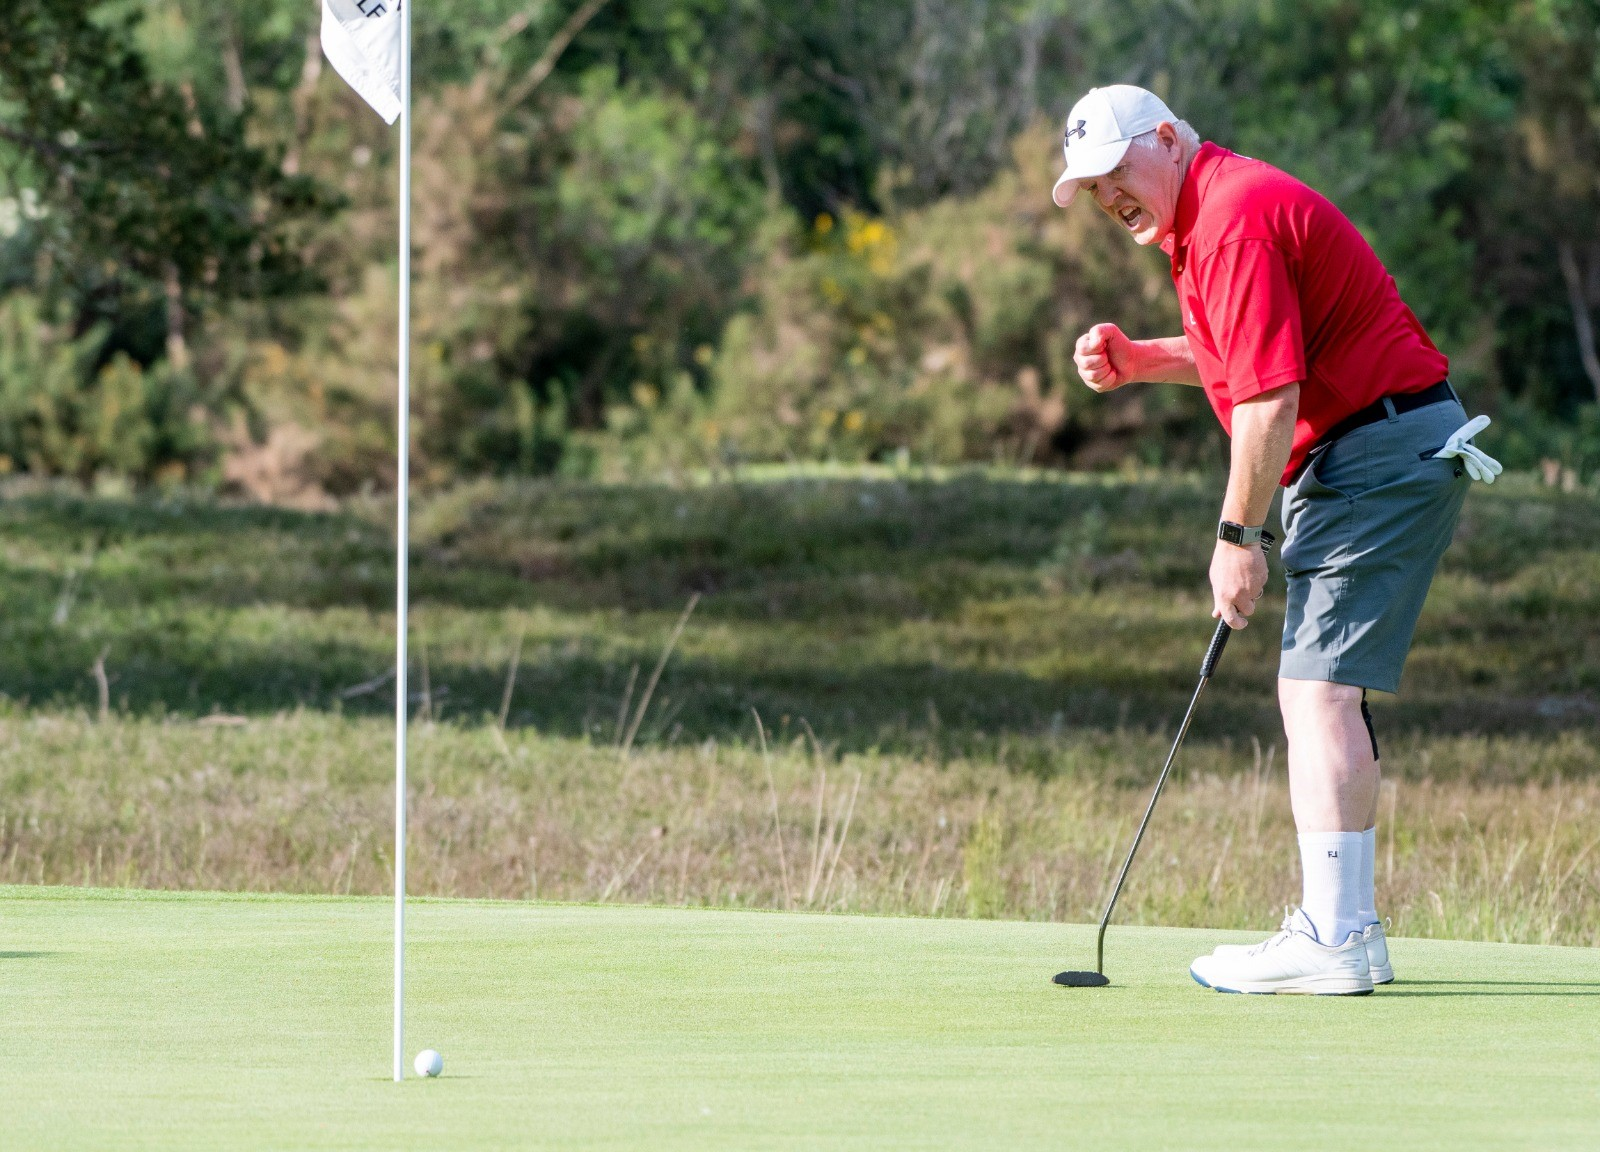 Senior Men's Amateur – Day One: White gets it right to lead by two